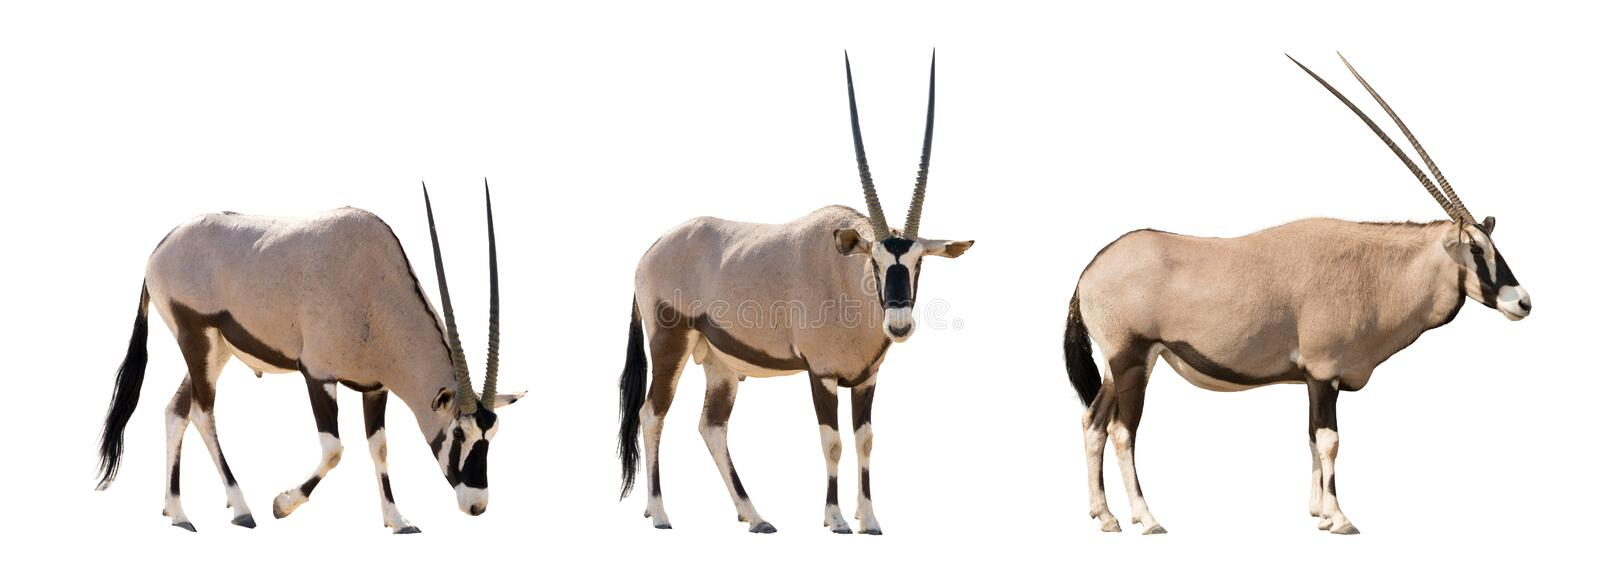 Set of three gemsbok in different posing isolated on white background royalty free stock images